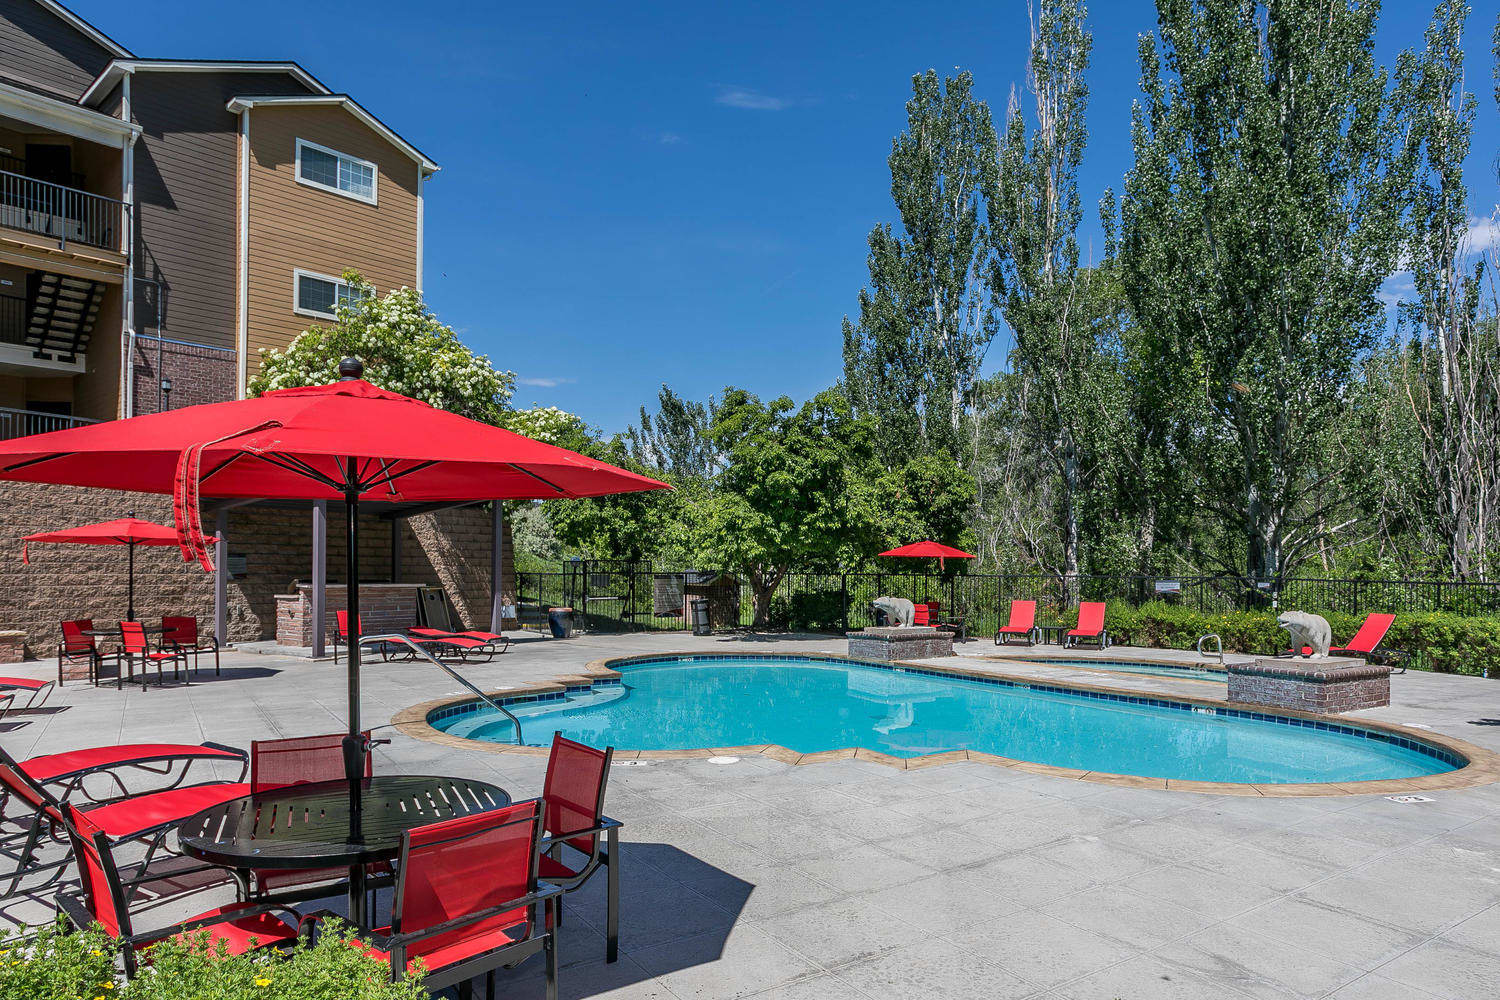 Pool at The Crossings at Bear Creek Apartments